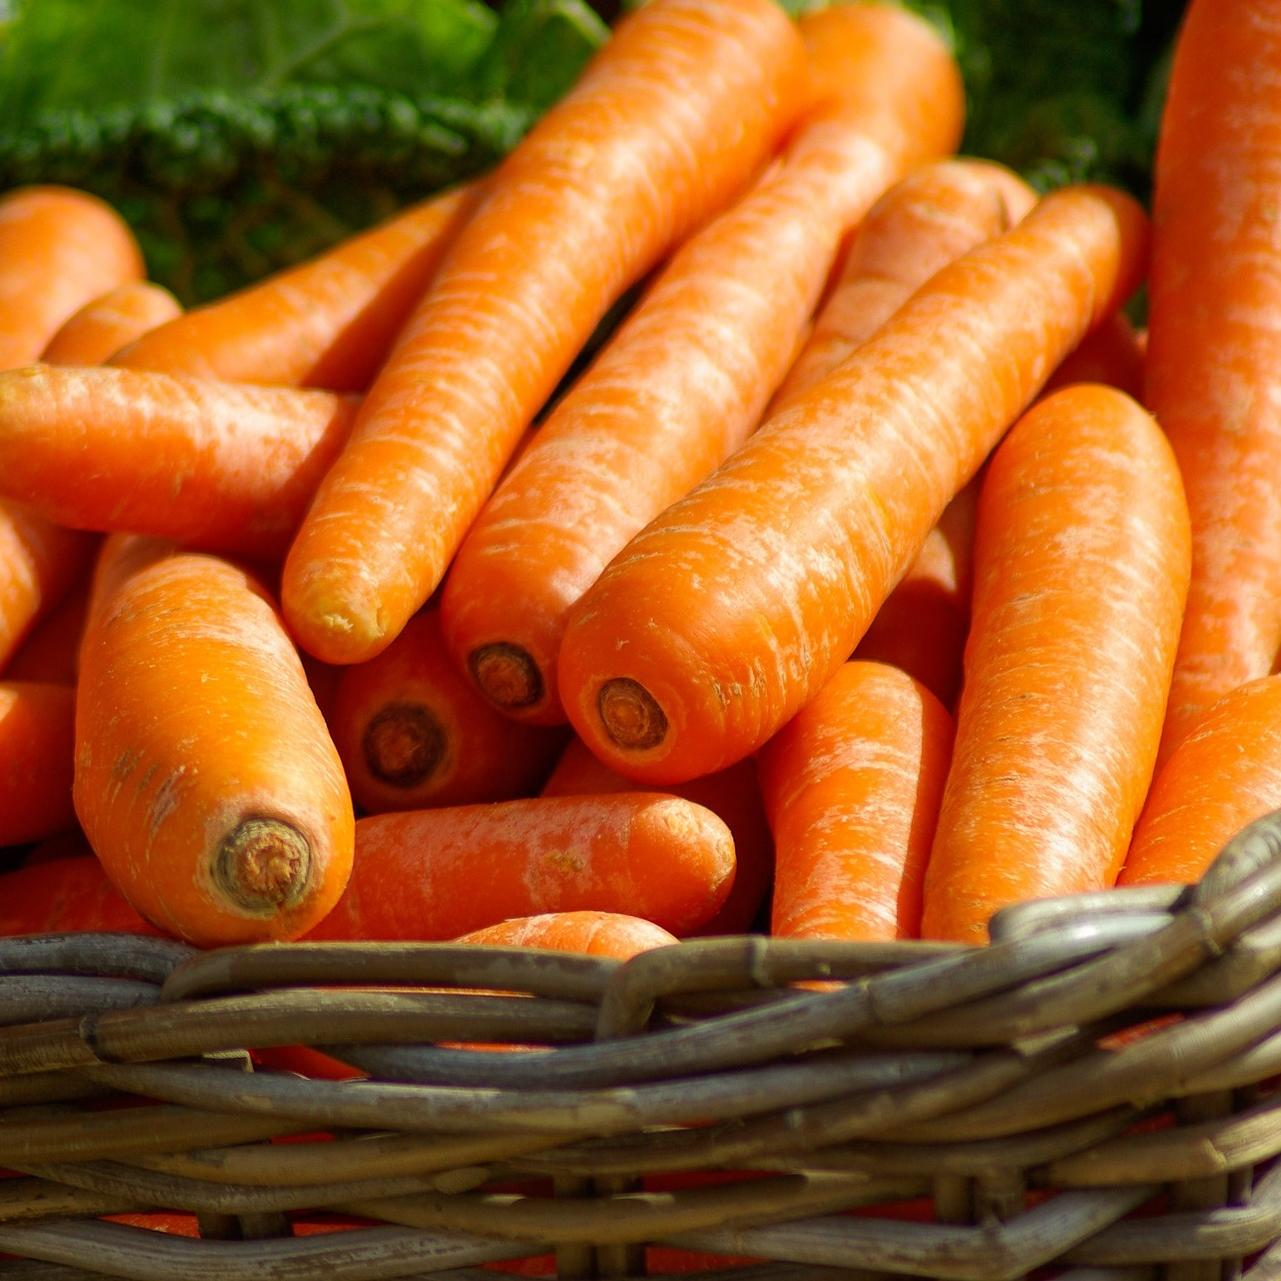 1Kg Local Carrots